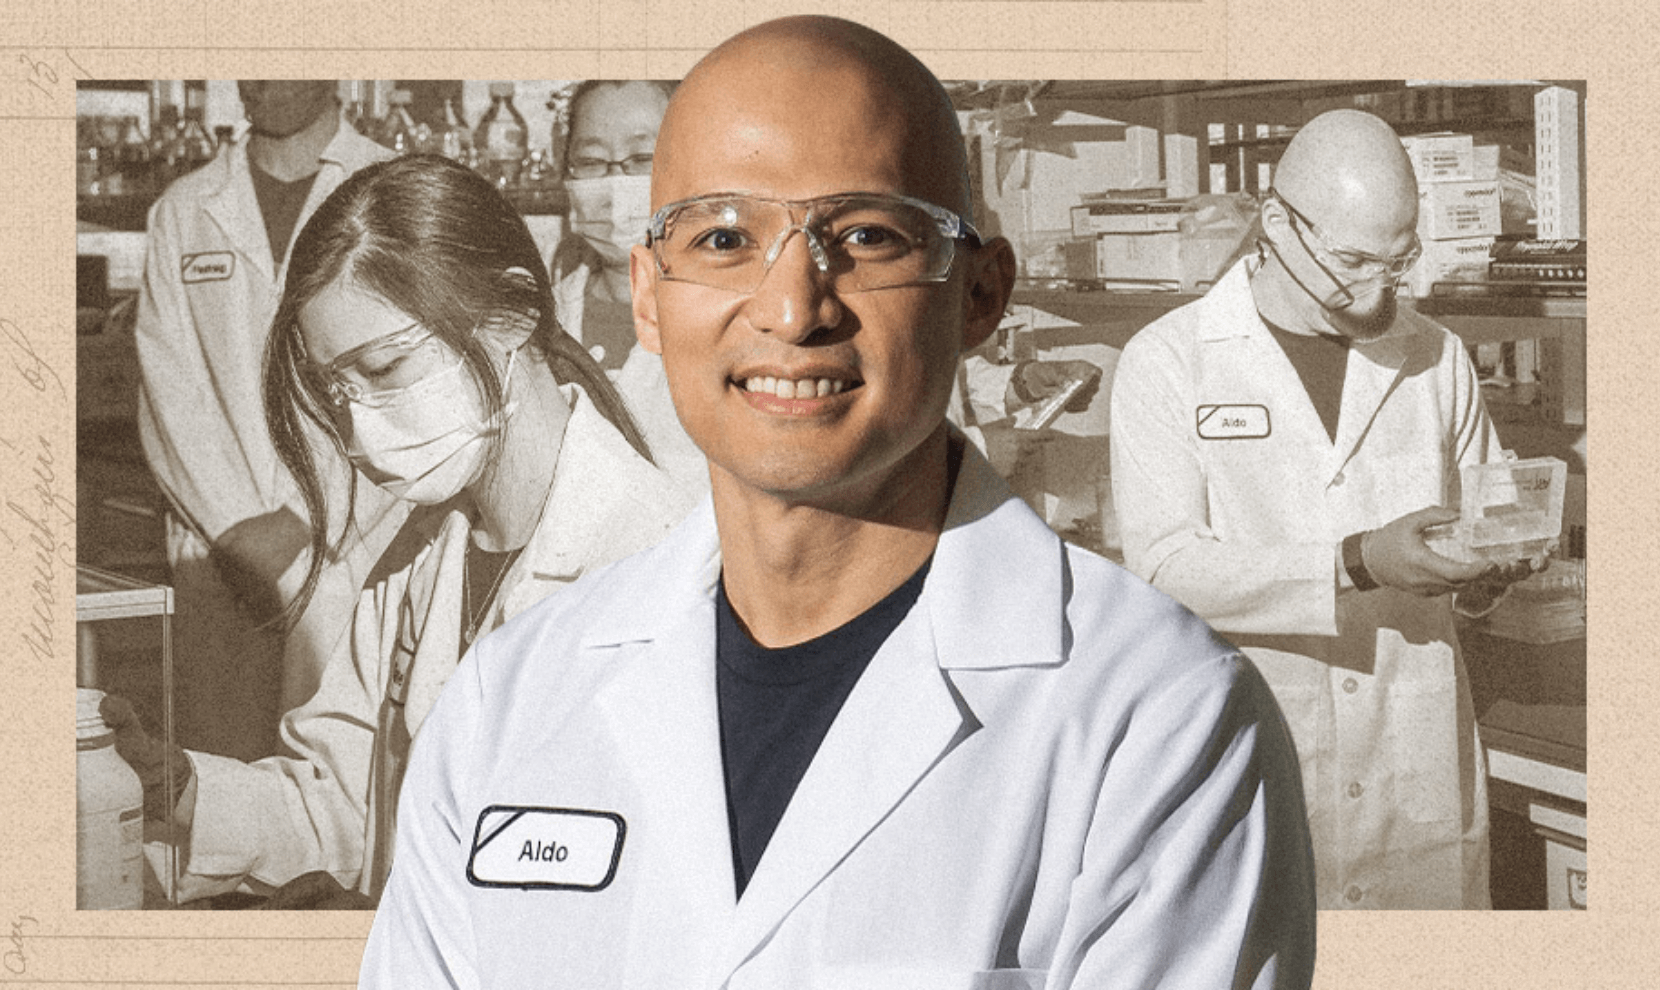 2-billion-pesos-raised-filipino-ceos-biotech-startup-aims-for-early-detection-of-ovarian-cancer